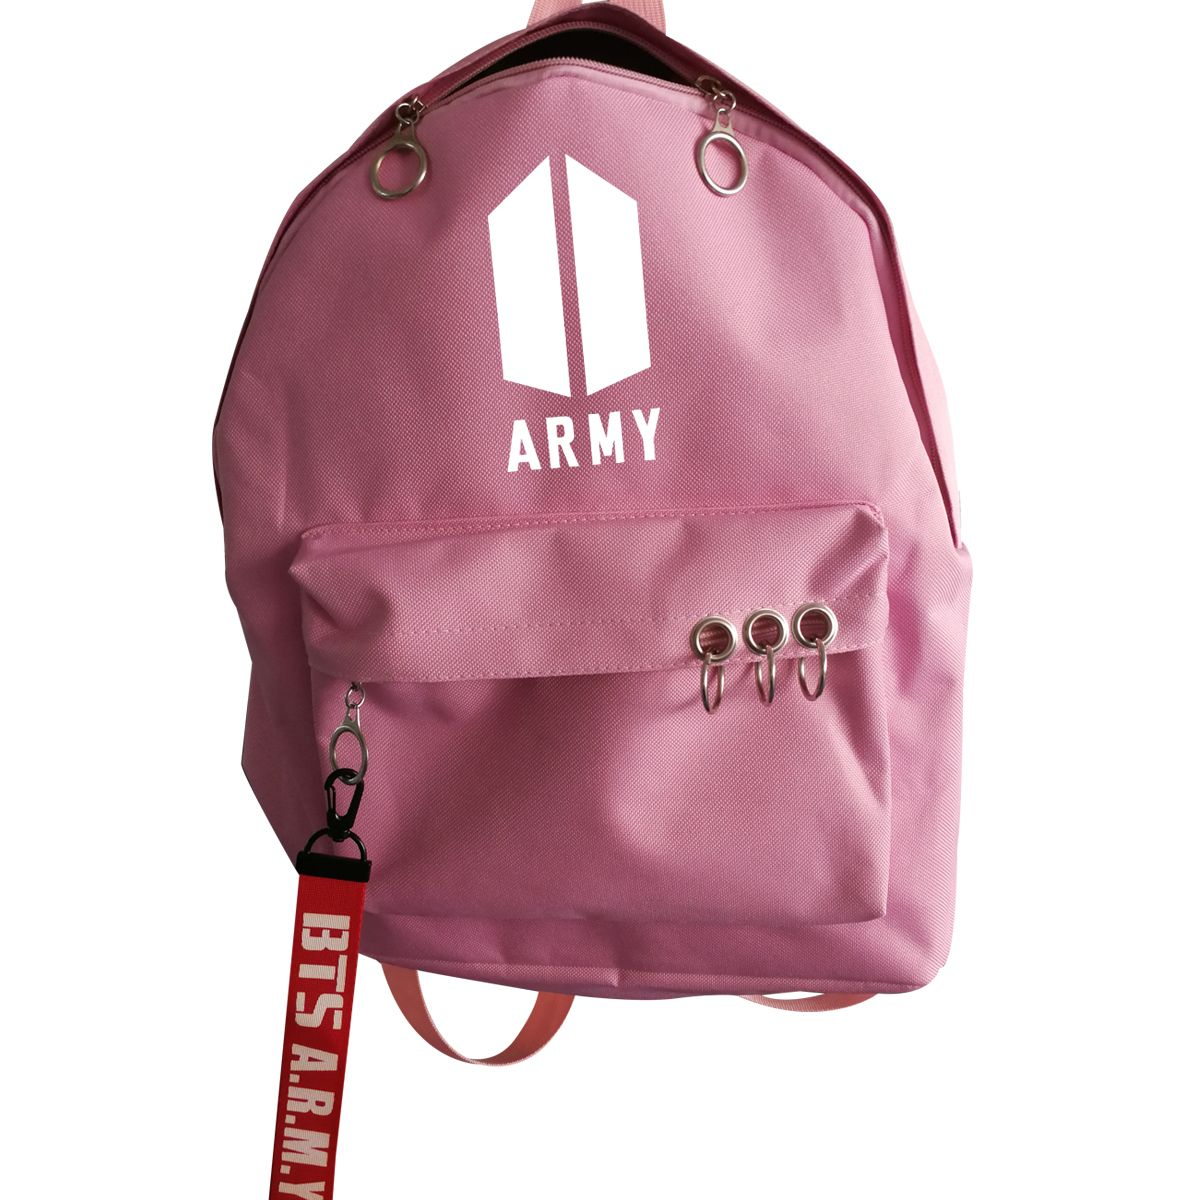 Kpop home BTS Bulletproof backpack wanna one got7 bag backpack around the same paragraph